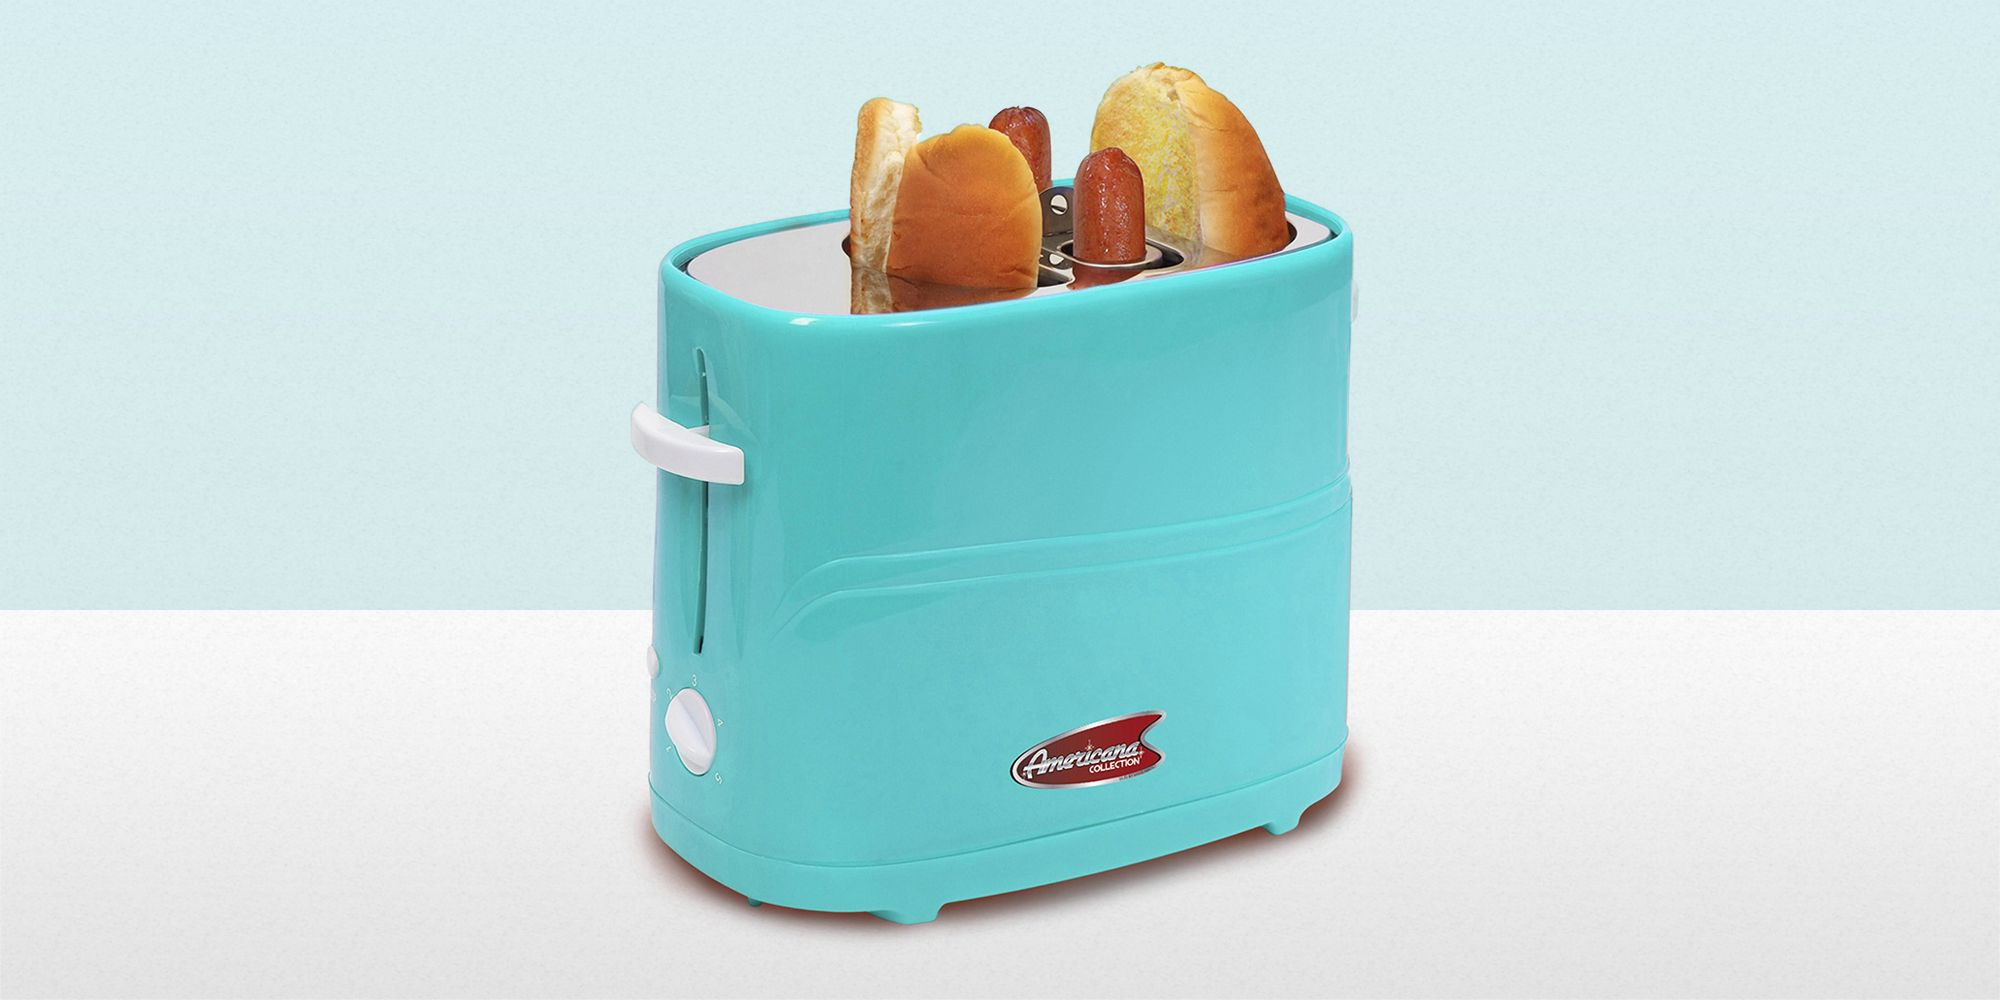 6 Top Hot Dog Toasters 2018 - Reviews of Pop Up Hot Dog and Bun Toasters